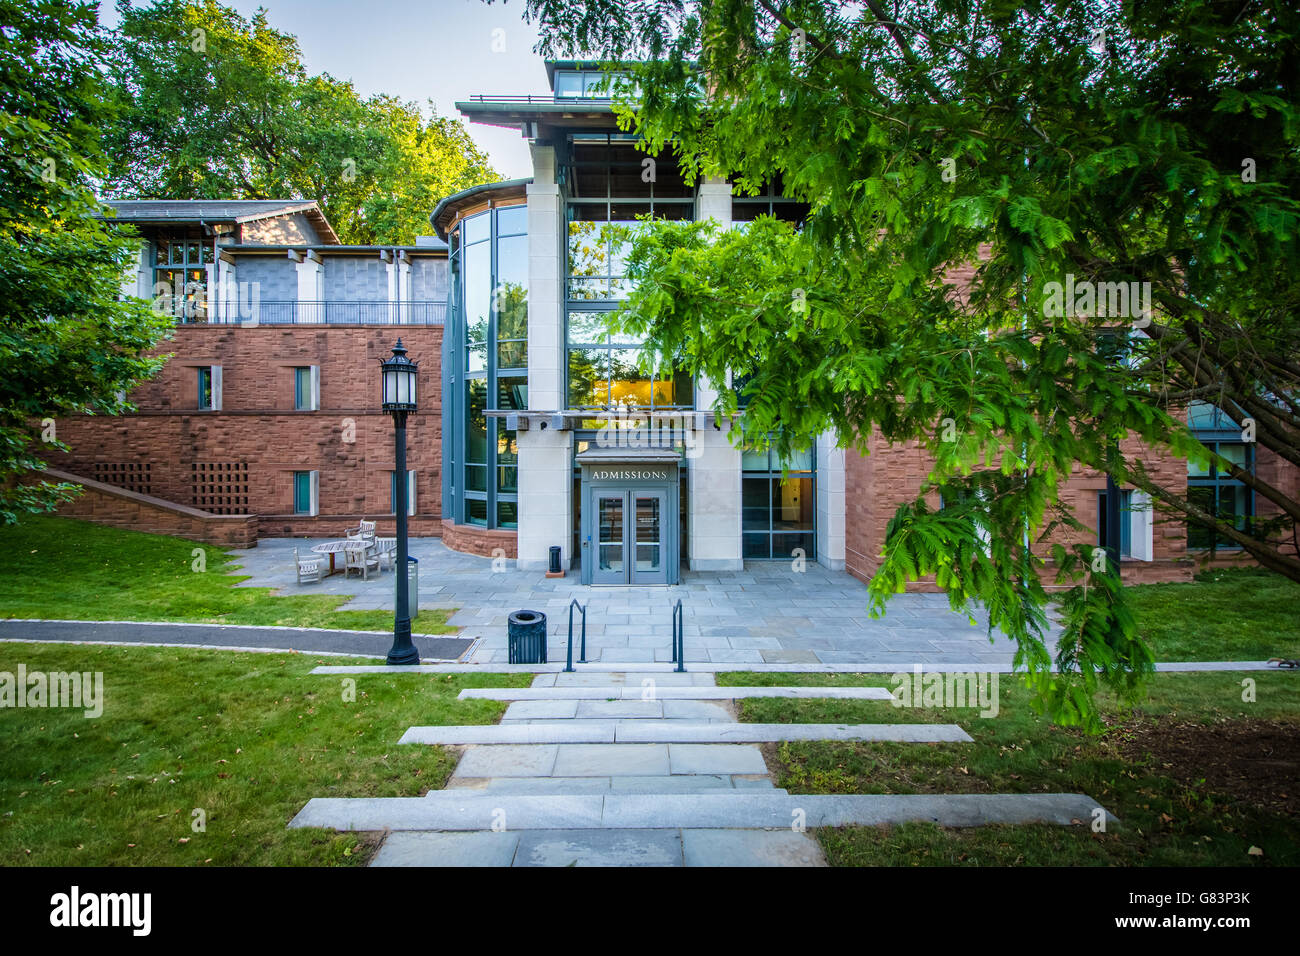 The Admissions Building at Trinity College, in Hartford, Connecticut. - Stock Image